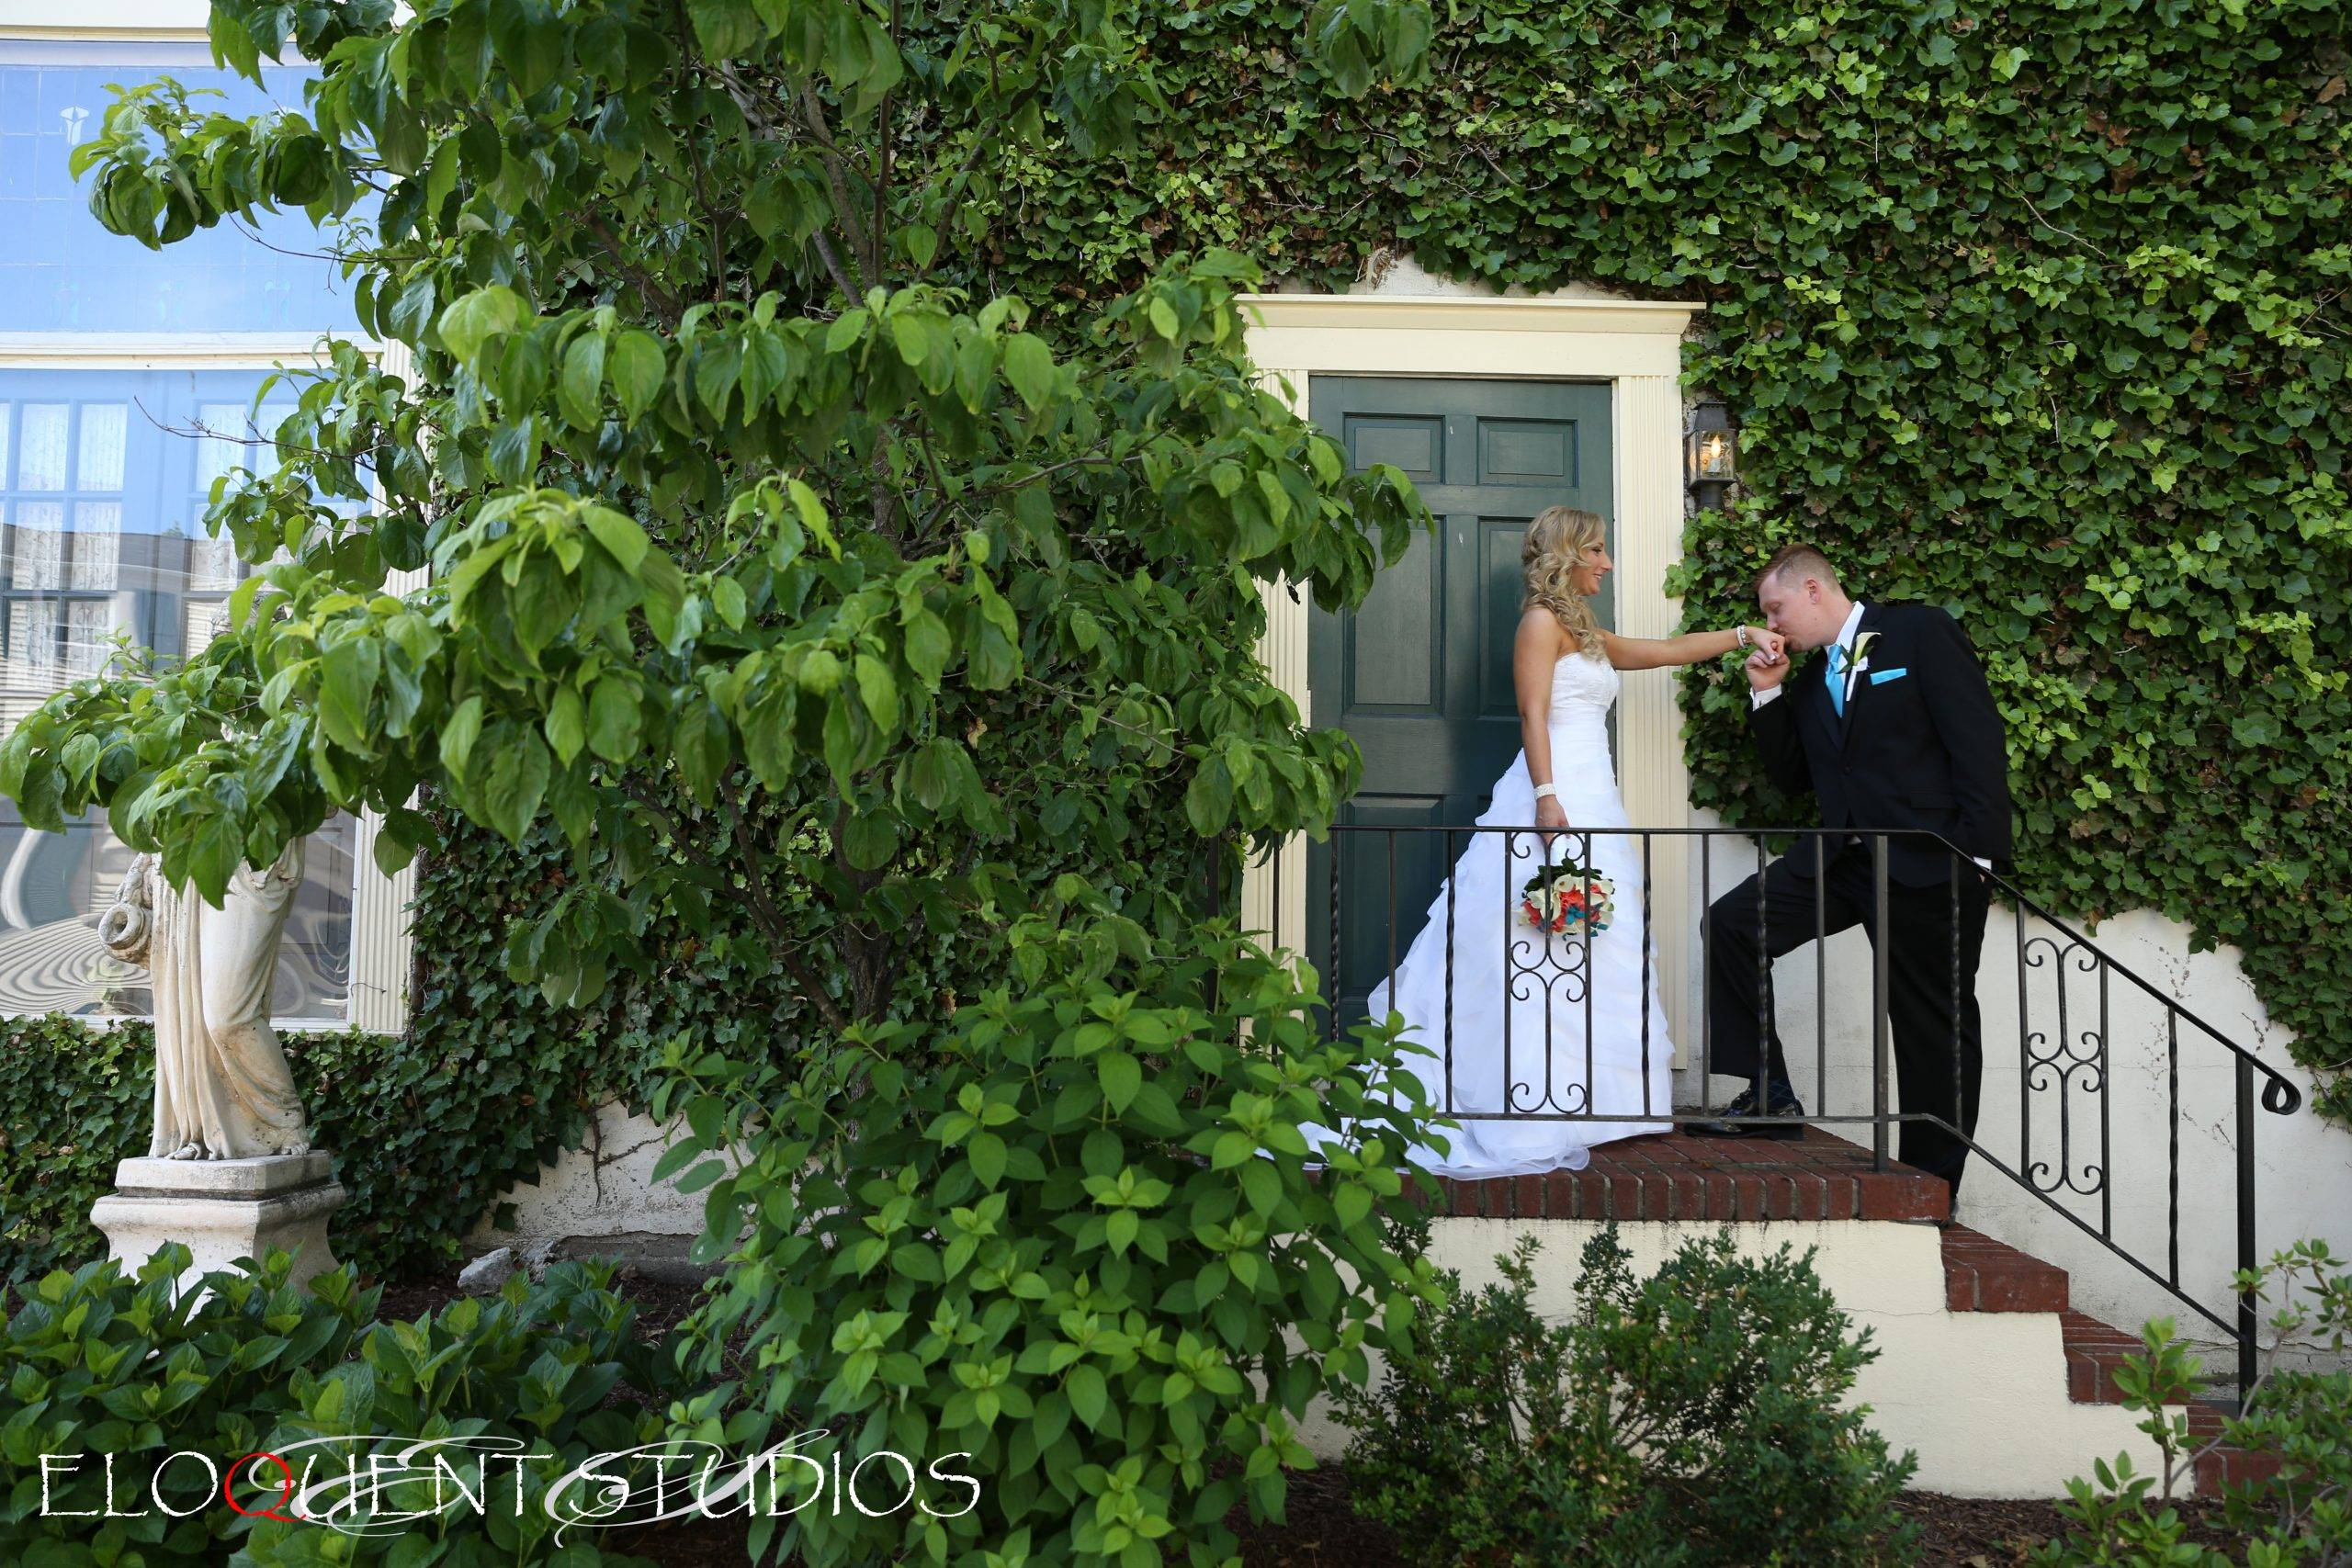 David's Country Inn kissing the bride's hand at the door